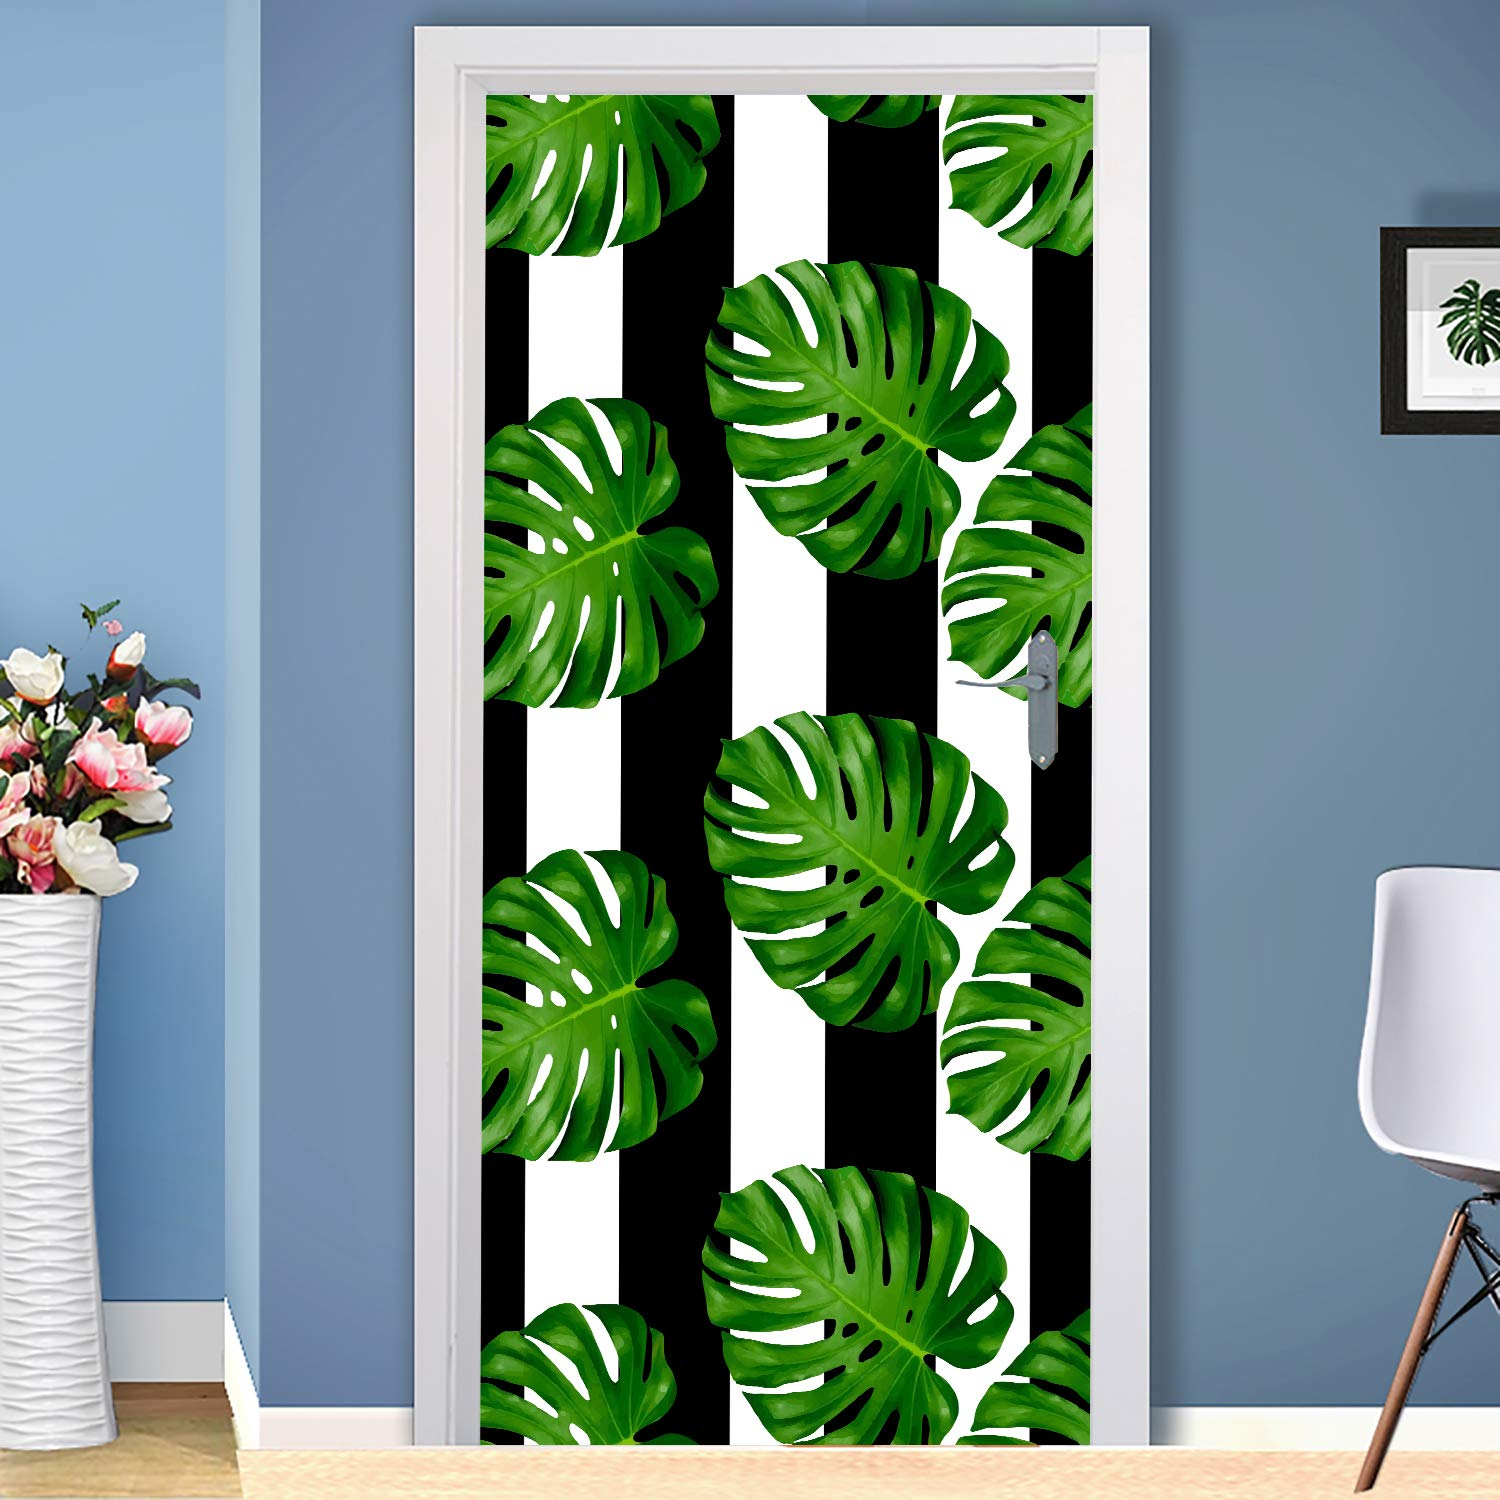 Amazon Com Tropical Green Leafs Door Tropical Leaves Stickers Vinyl Cover Decor For Entry Door Tropical Bedroom Decor Nd81 Handmade